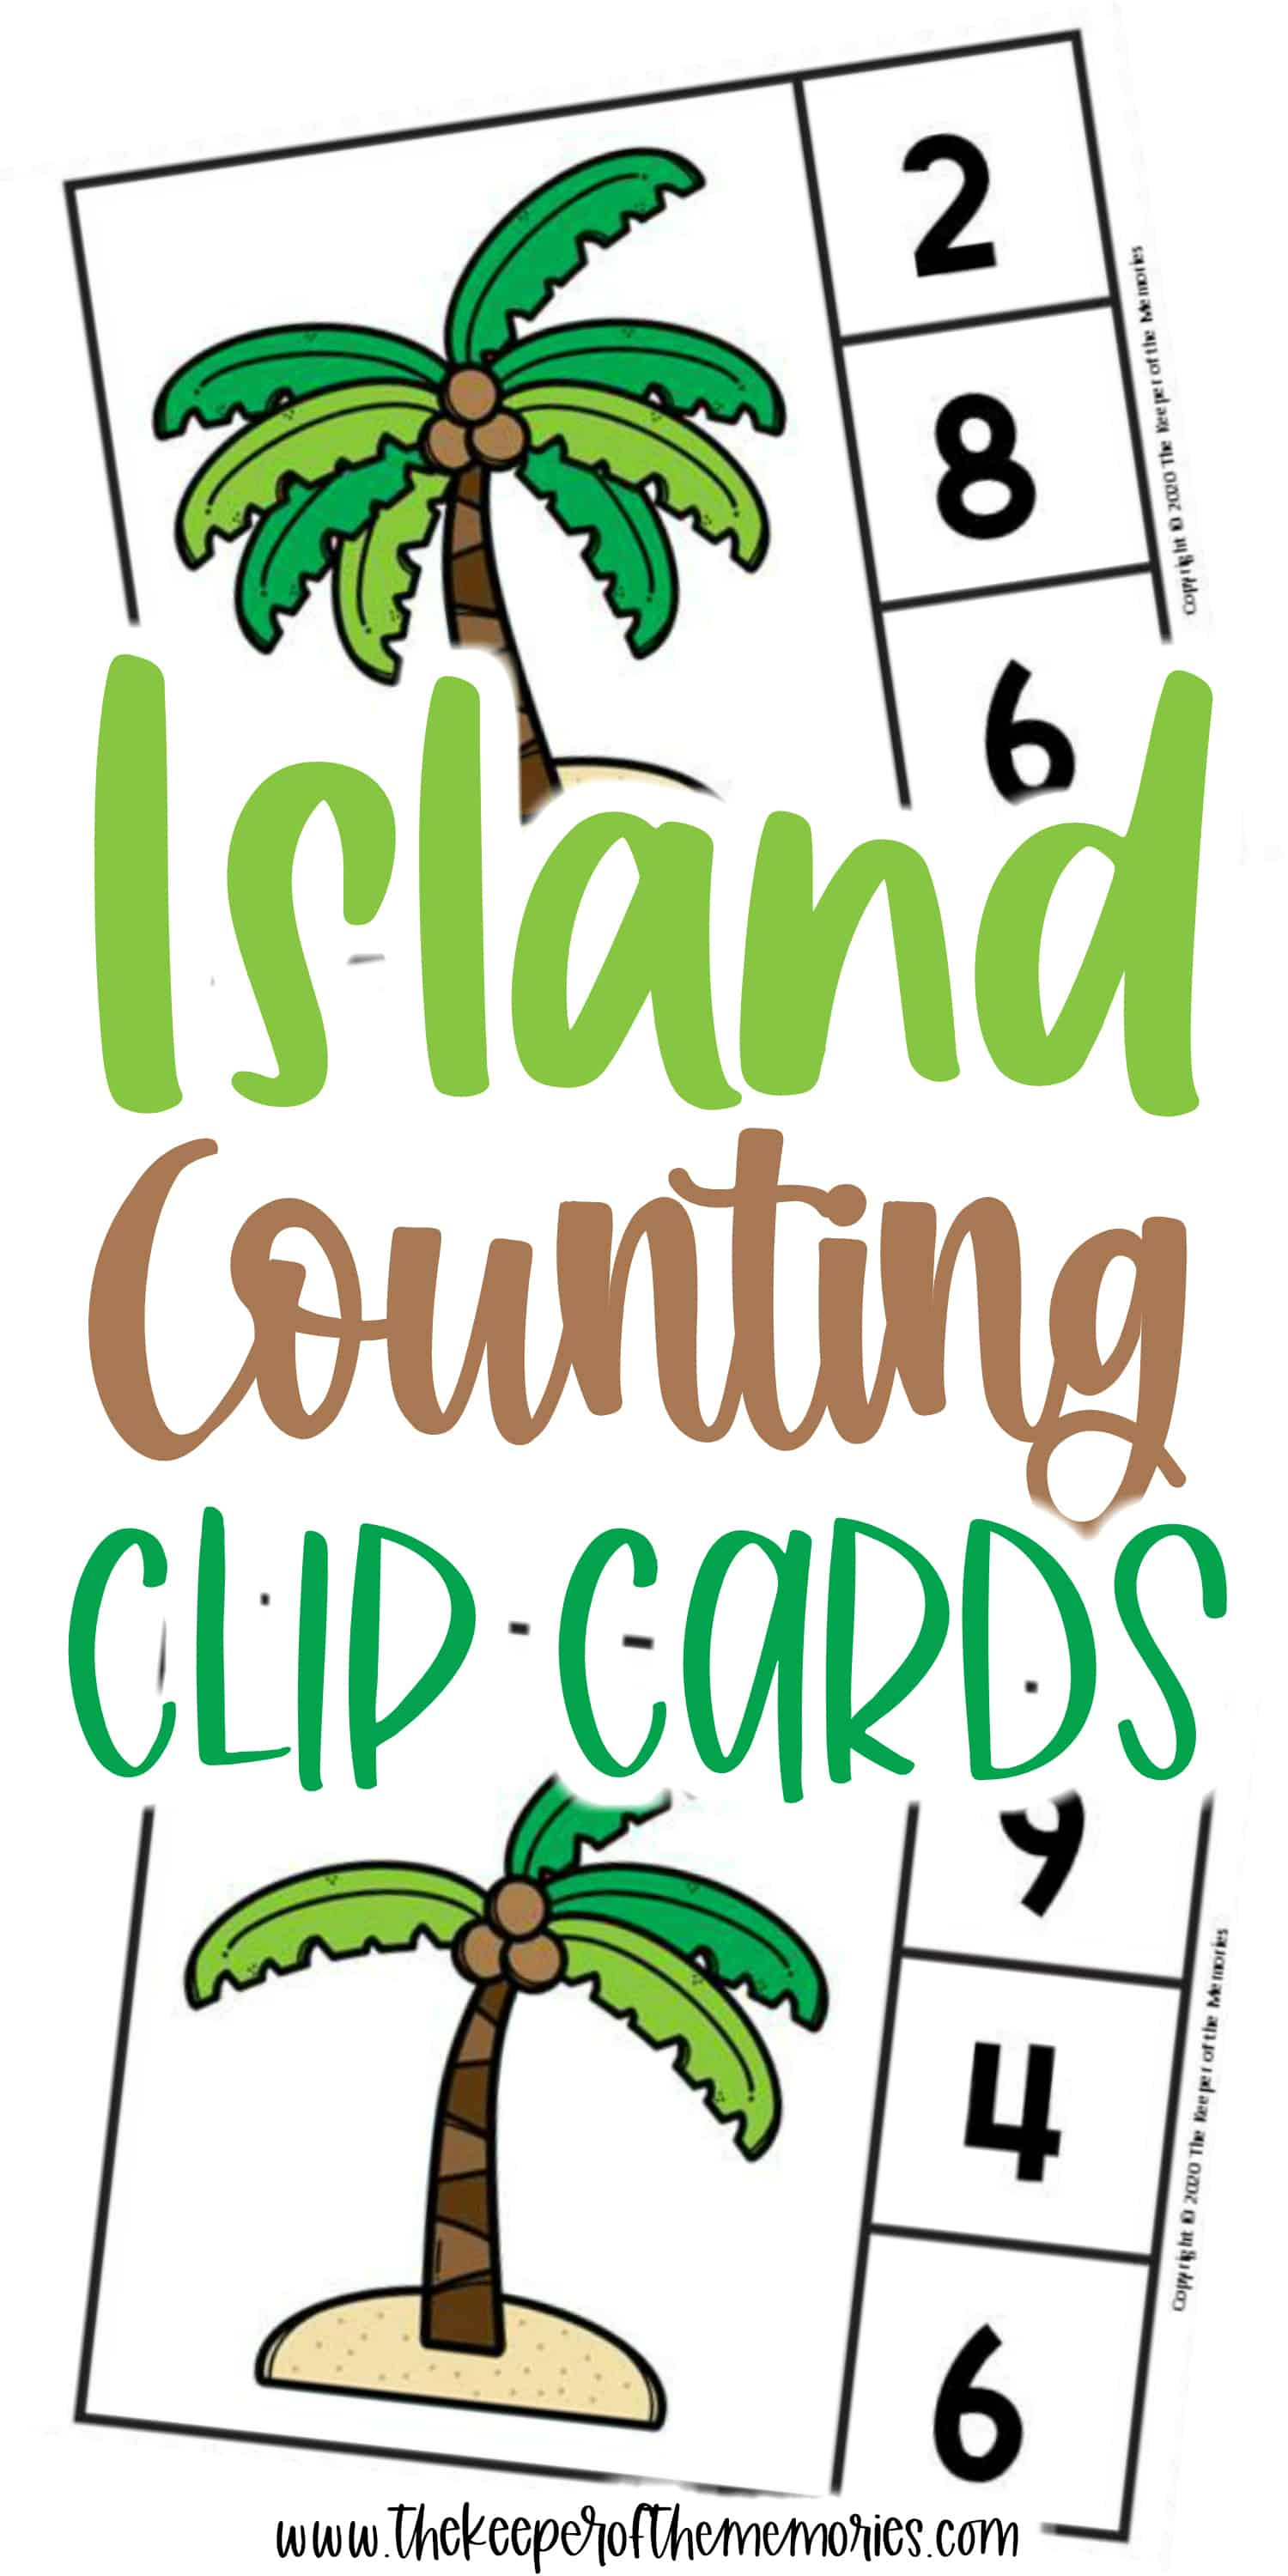 Free Printable Island Counting Clip Cards